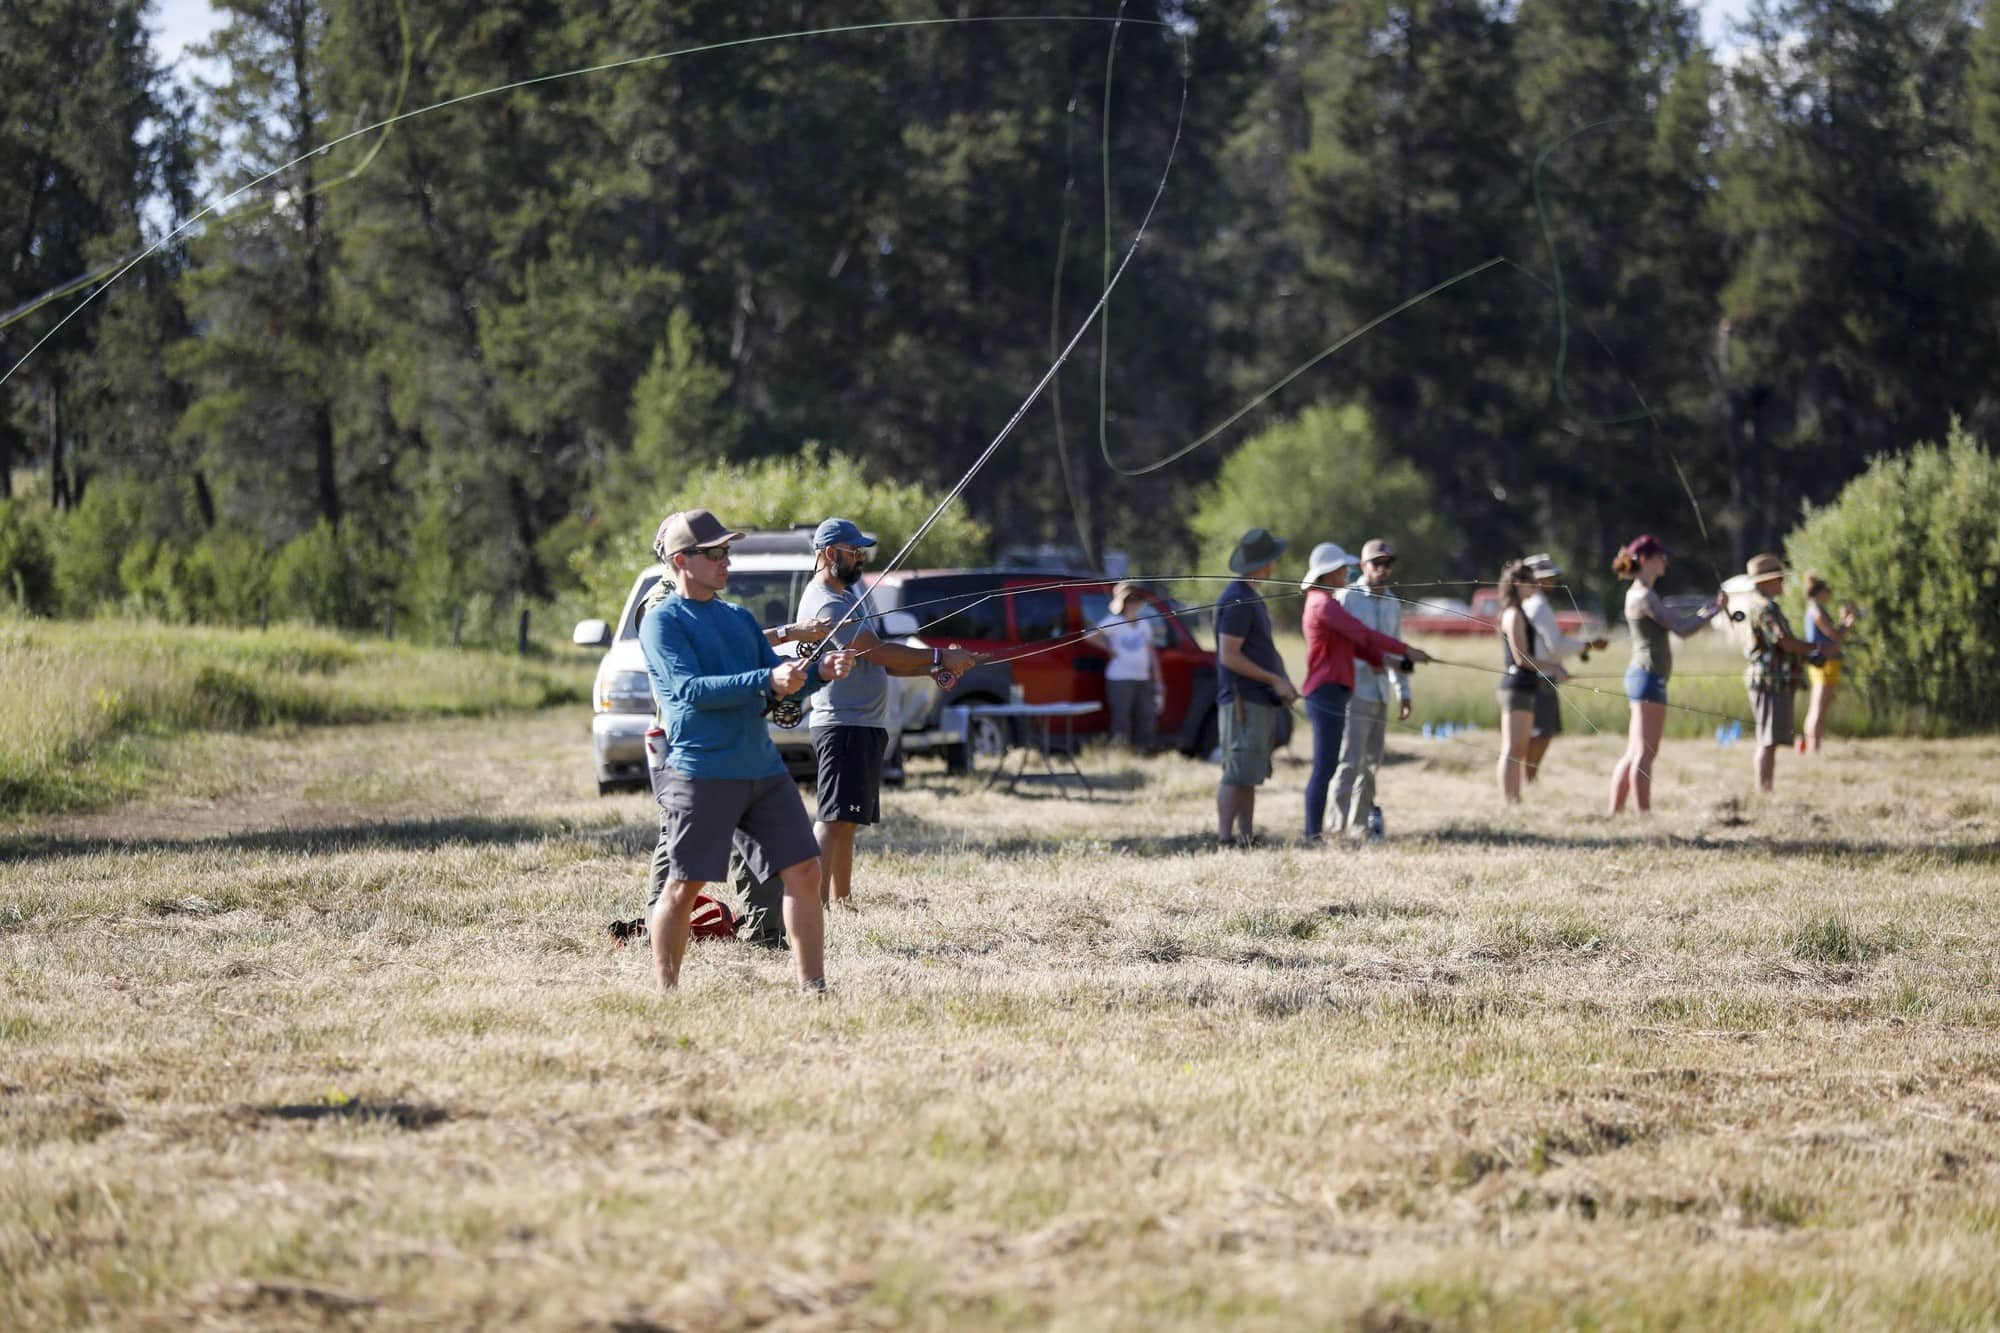 Read about the top highlights from Bearfoot Theory's first-ever Open Roads Fest - a van life festival & campout for outdoor enthusiasts in Idaho.